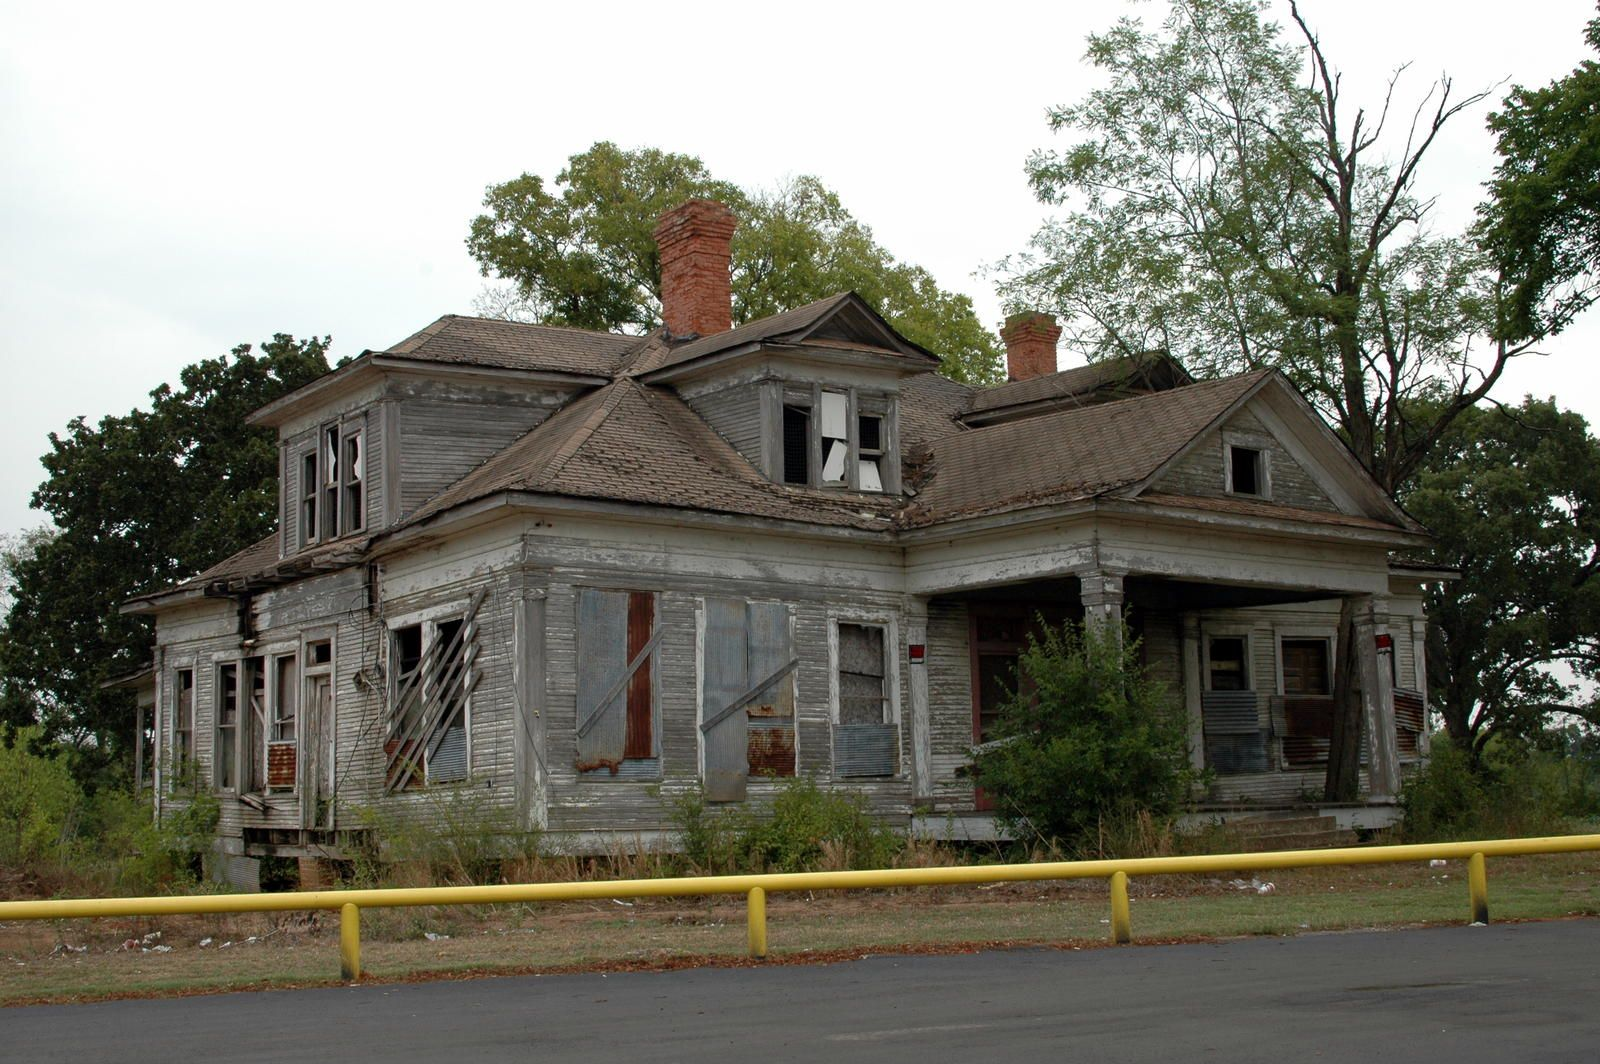 The Haunted House Behind The Dairy Queen In Fairfield Texas The Dairy Queen S Address Is 683 W Us Hwy 84 Fairfi Abandoned Houses Old Houses Abandoned Places